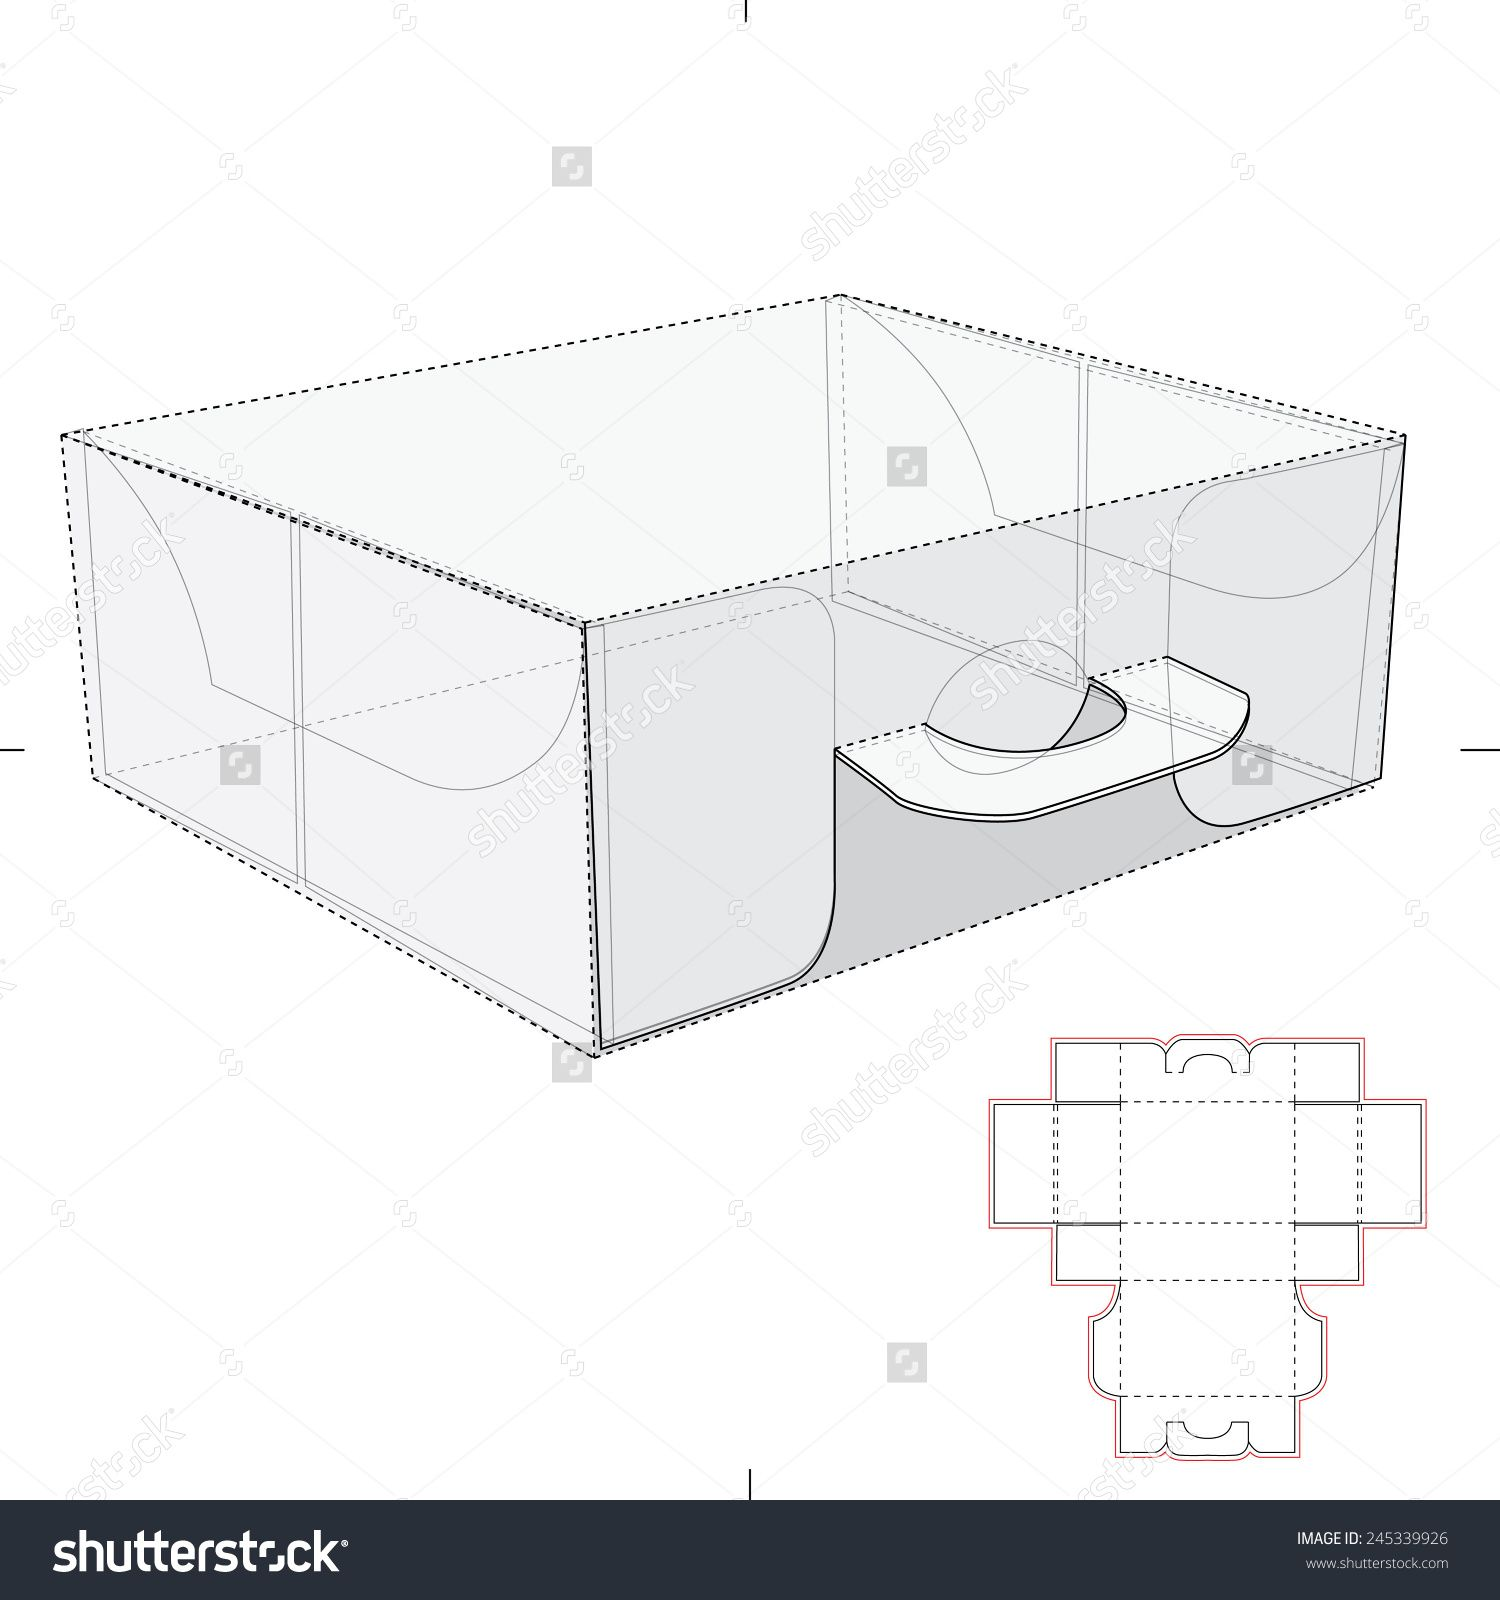 Carrier box with handles and die cut templates stock vector carrier box with handles and die cut templates stock vector illustration 245339926 shutterstock sciox Gallery